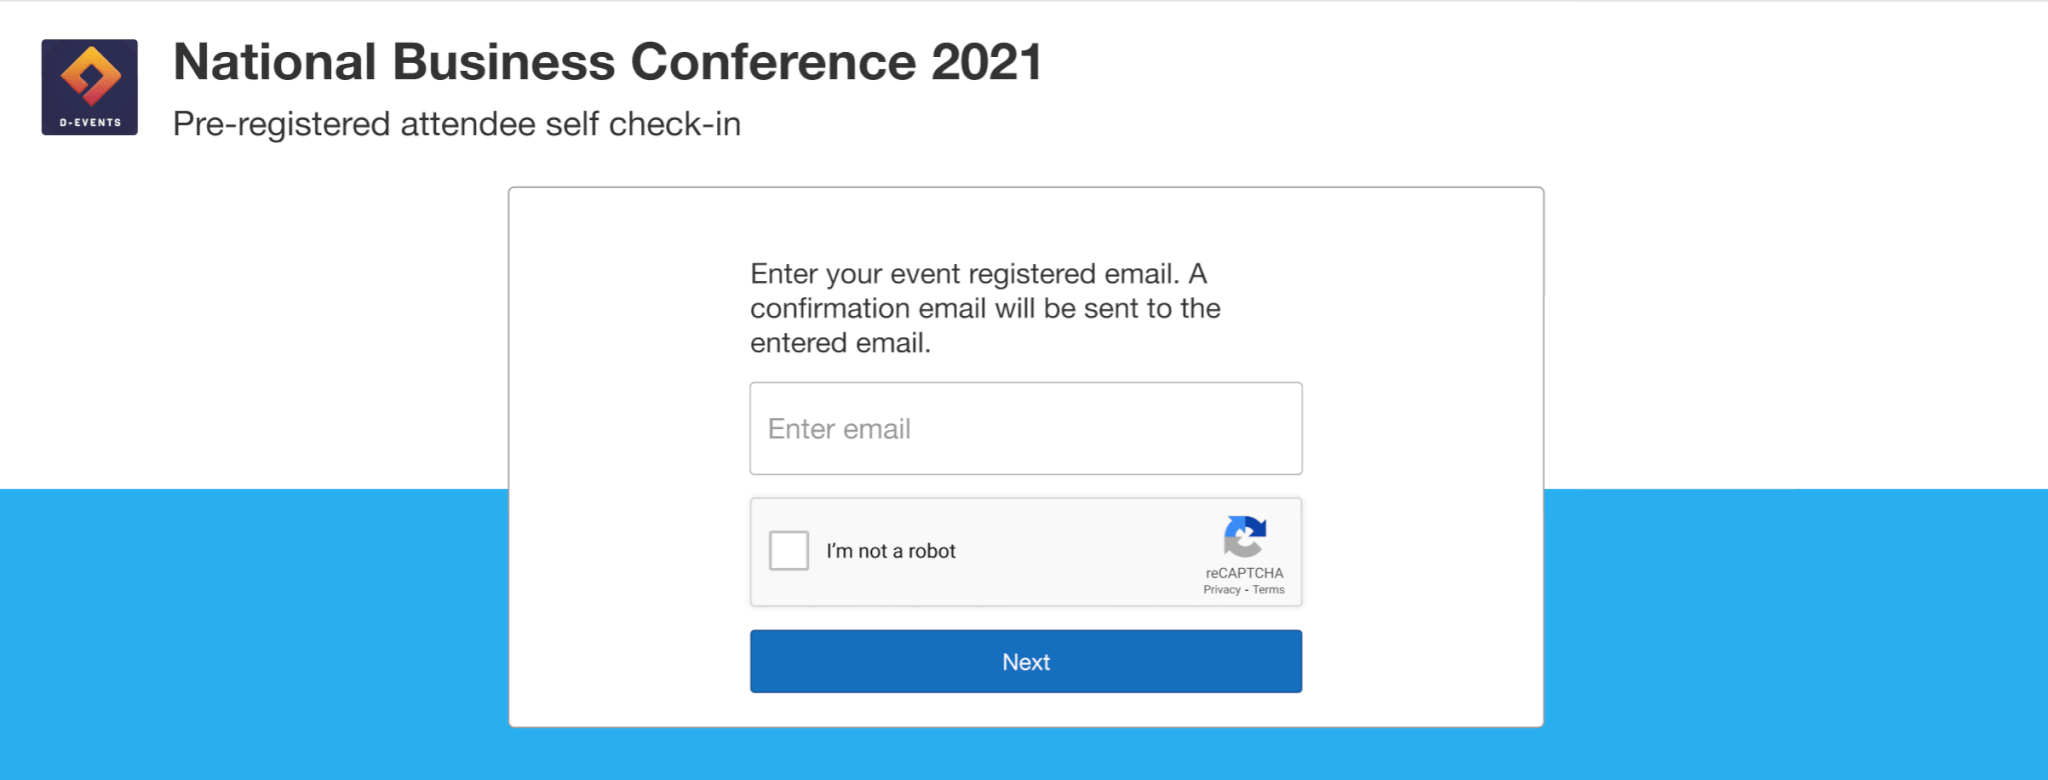 Attendees can check themselves in with the email they used to register for the event